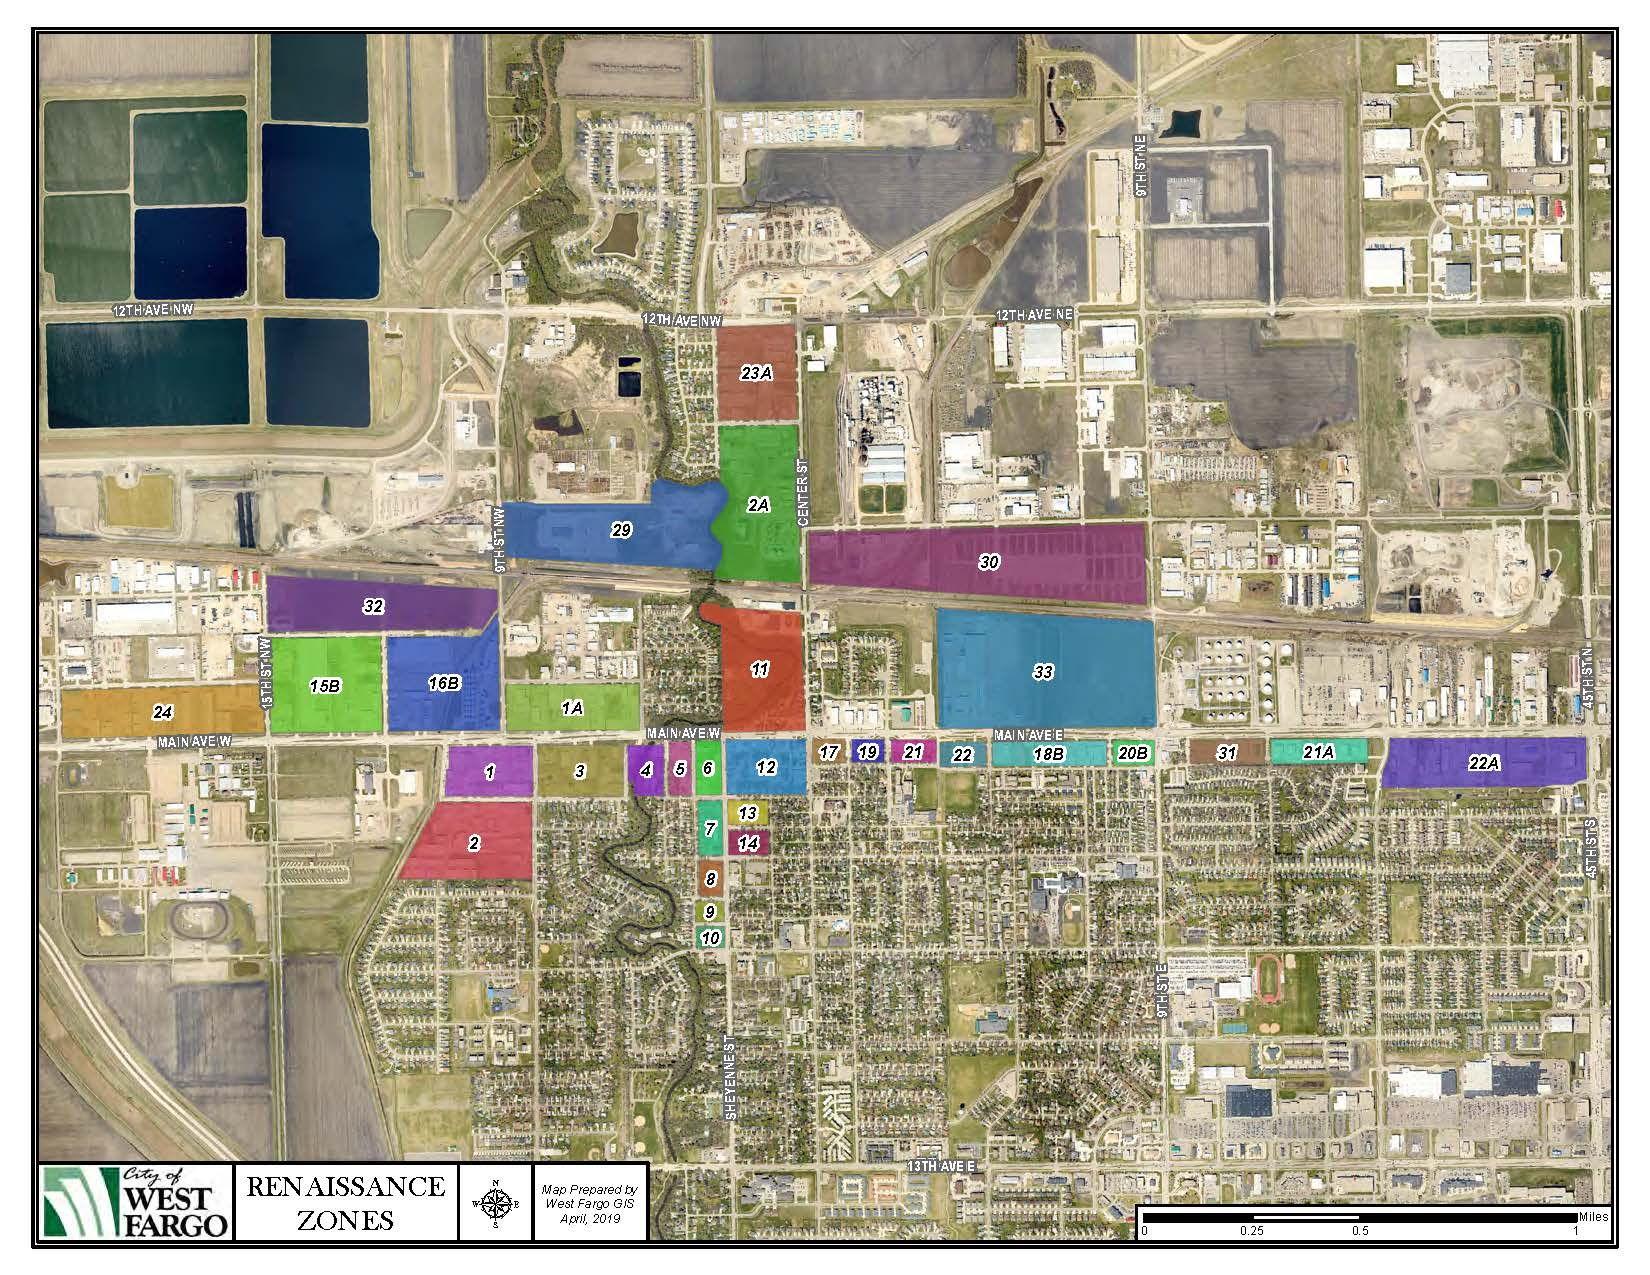 Map of blocks designated as Renaissance Zones in the City of West Fargo